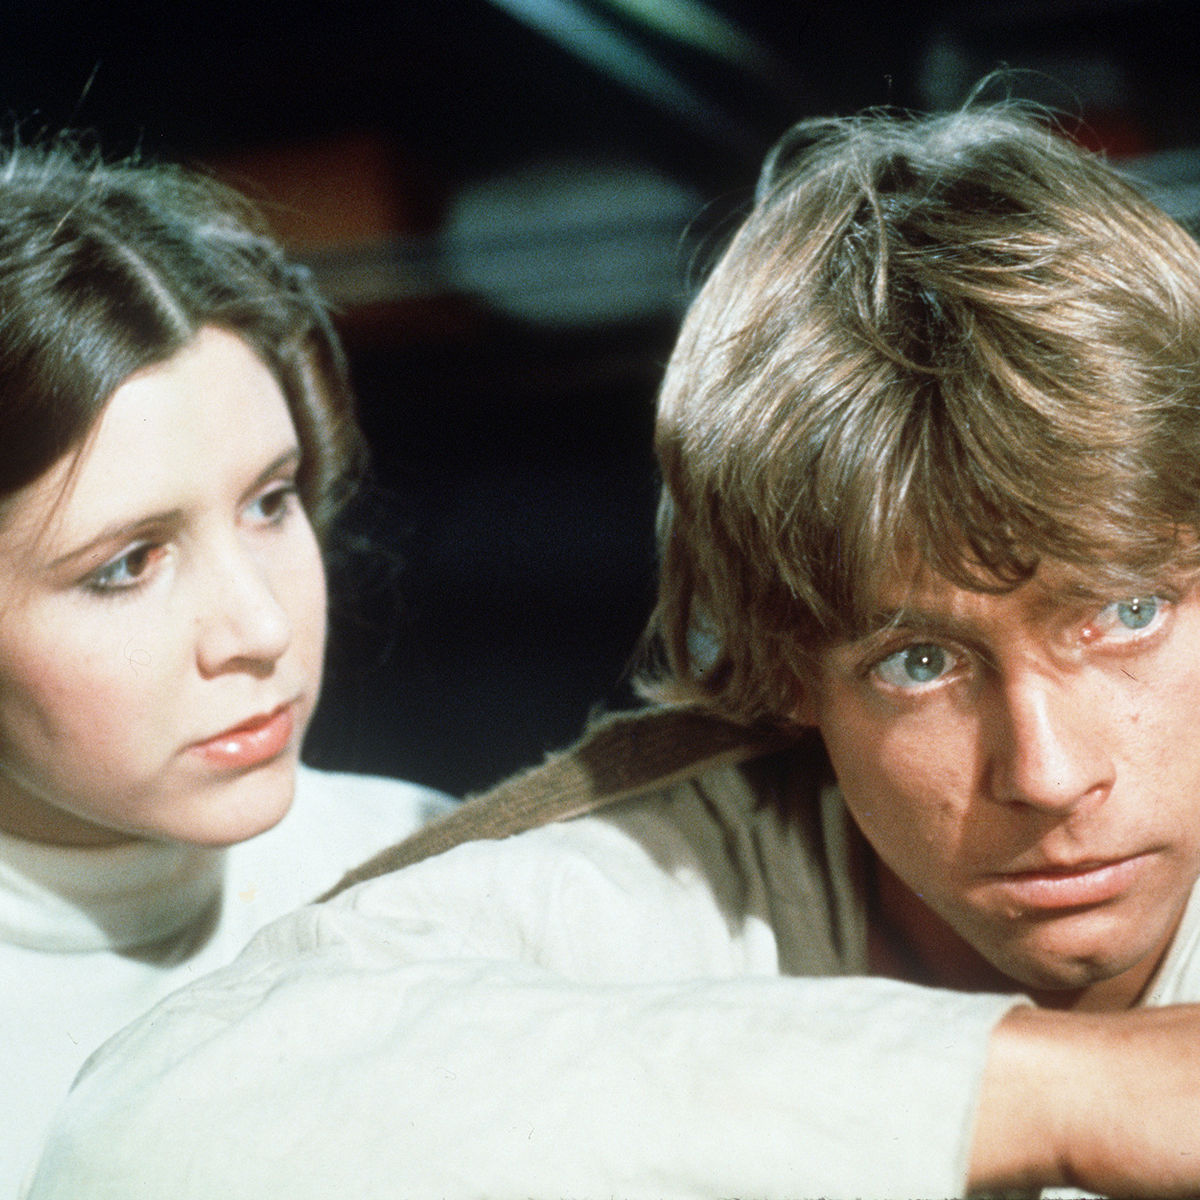 Luke-Leia-Star-Wars.jpg